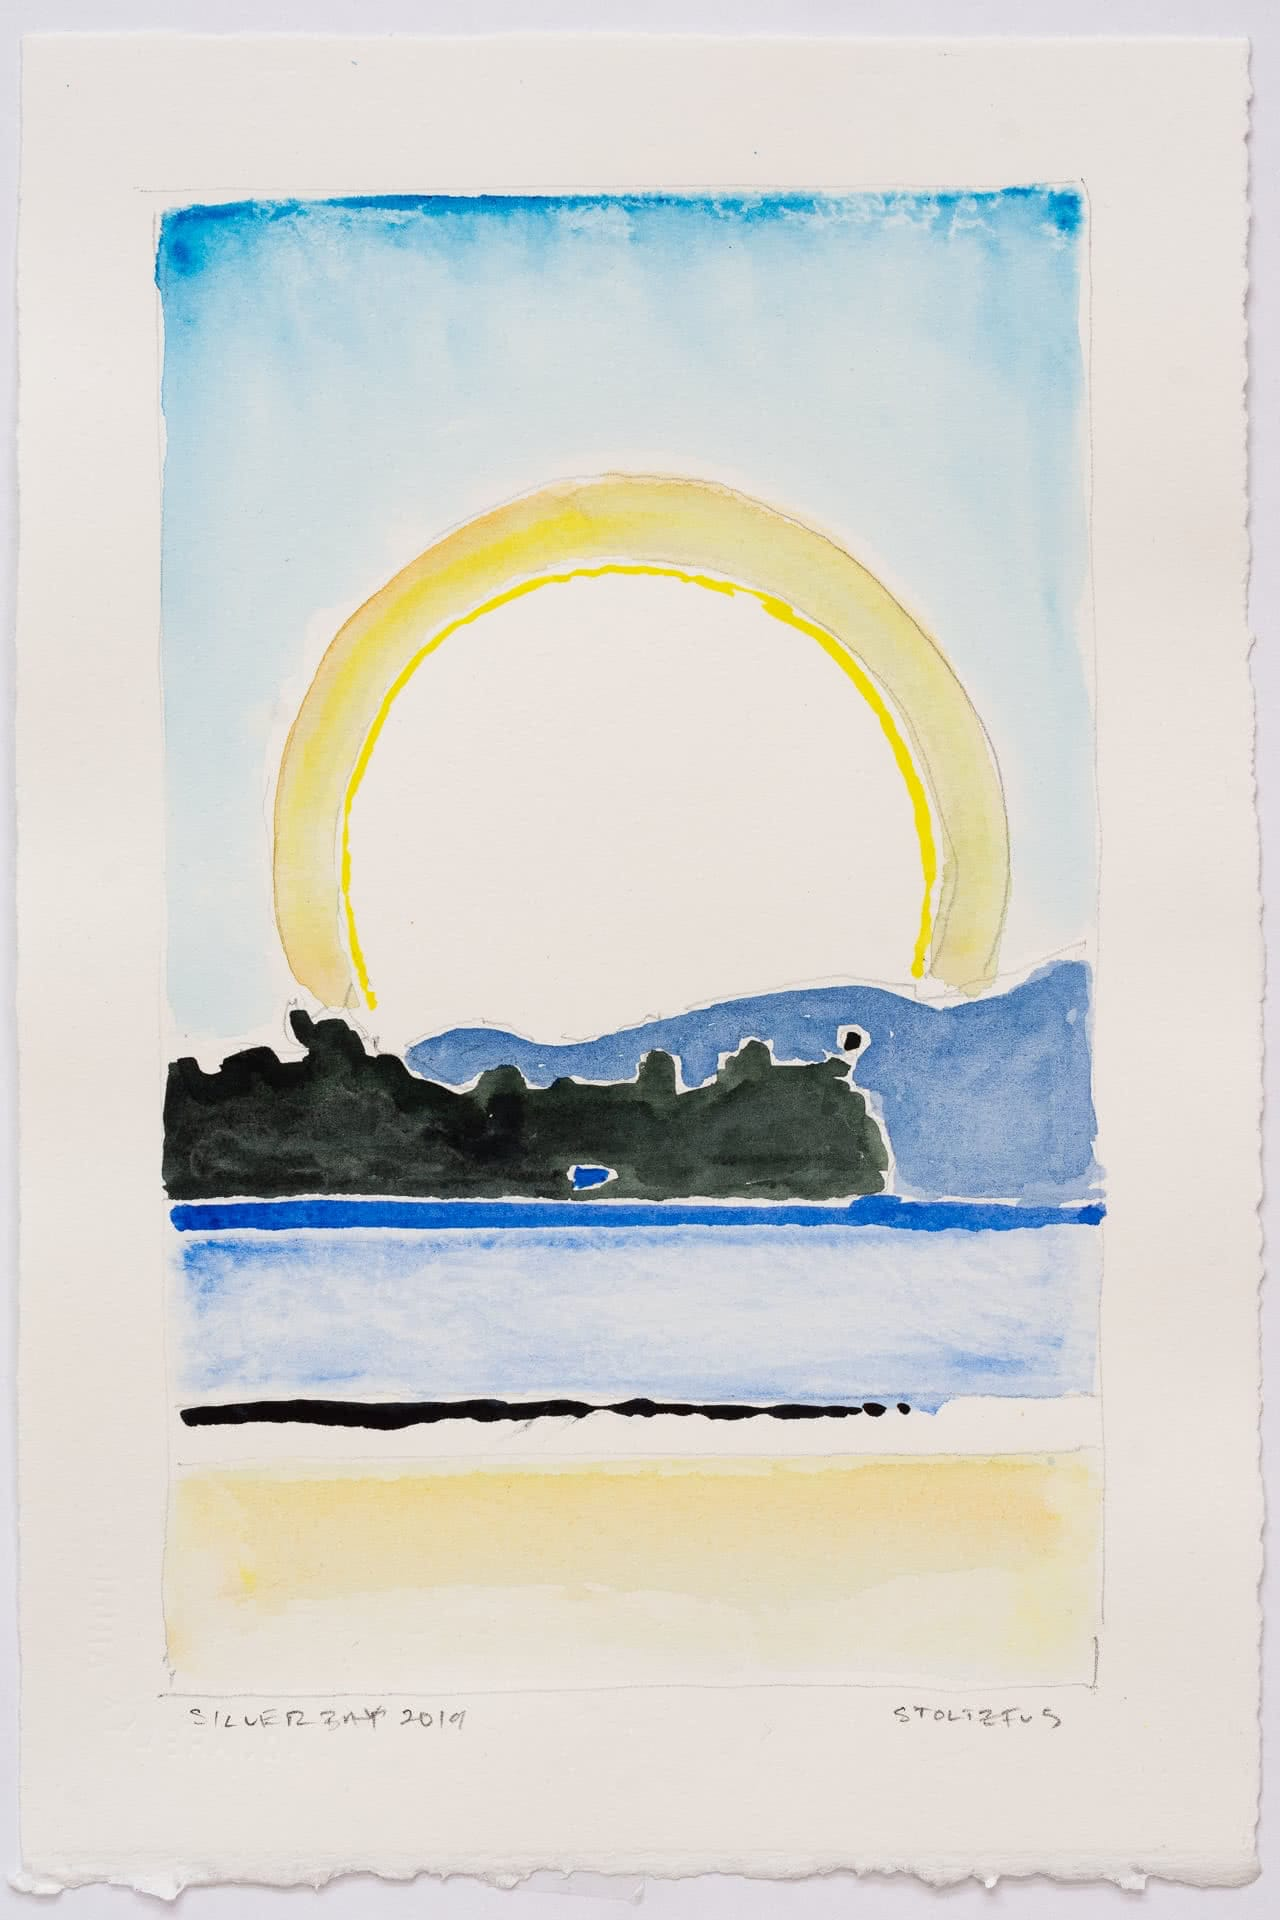 Sunlight over Lake George, NY | Silver Bay 2019 S9 by Randall Stoltzfus | Watercolor on paper, 11 by 7.5 inches